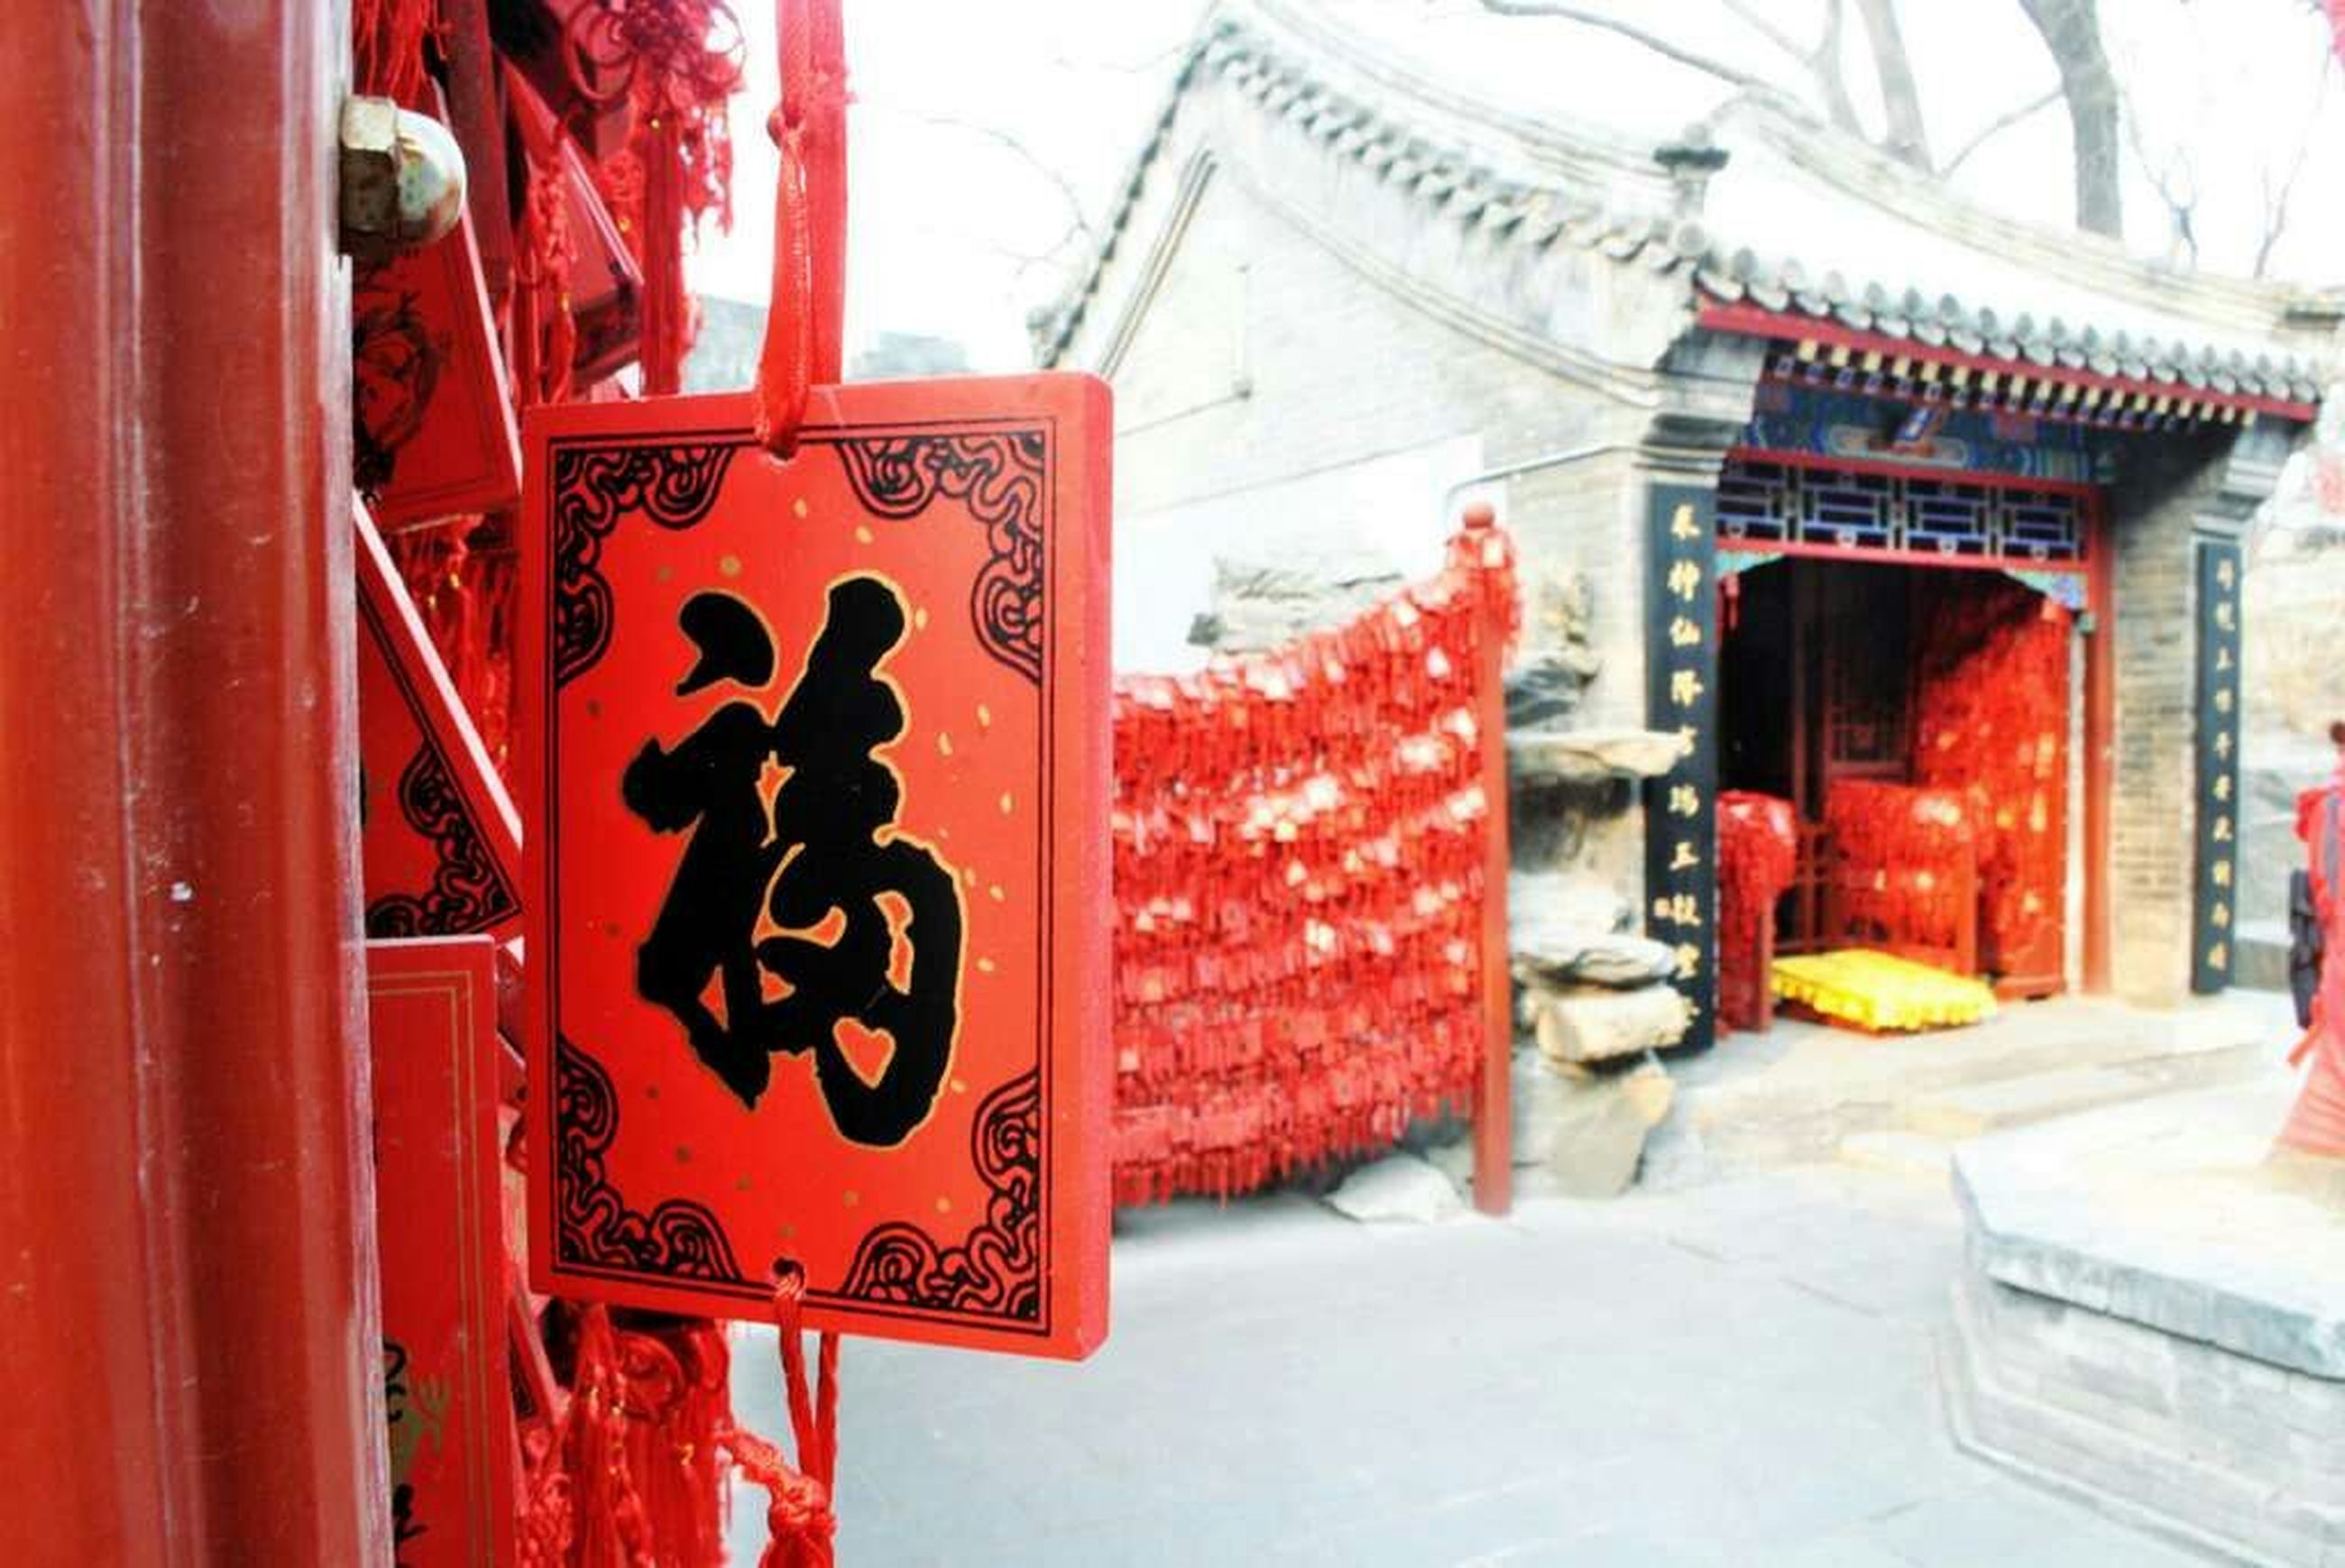 red, architecture, built structure, building exterior, house, outdoors, day, text, hanging, door, no people, tradition, wall - building feature, entrance, railing, cultures, city, building, temple - building, culture